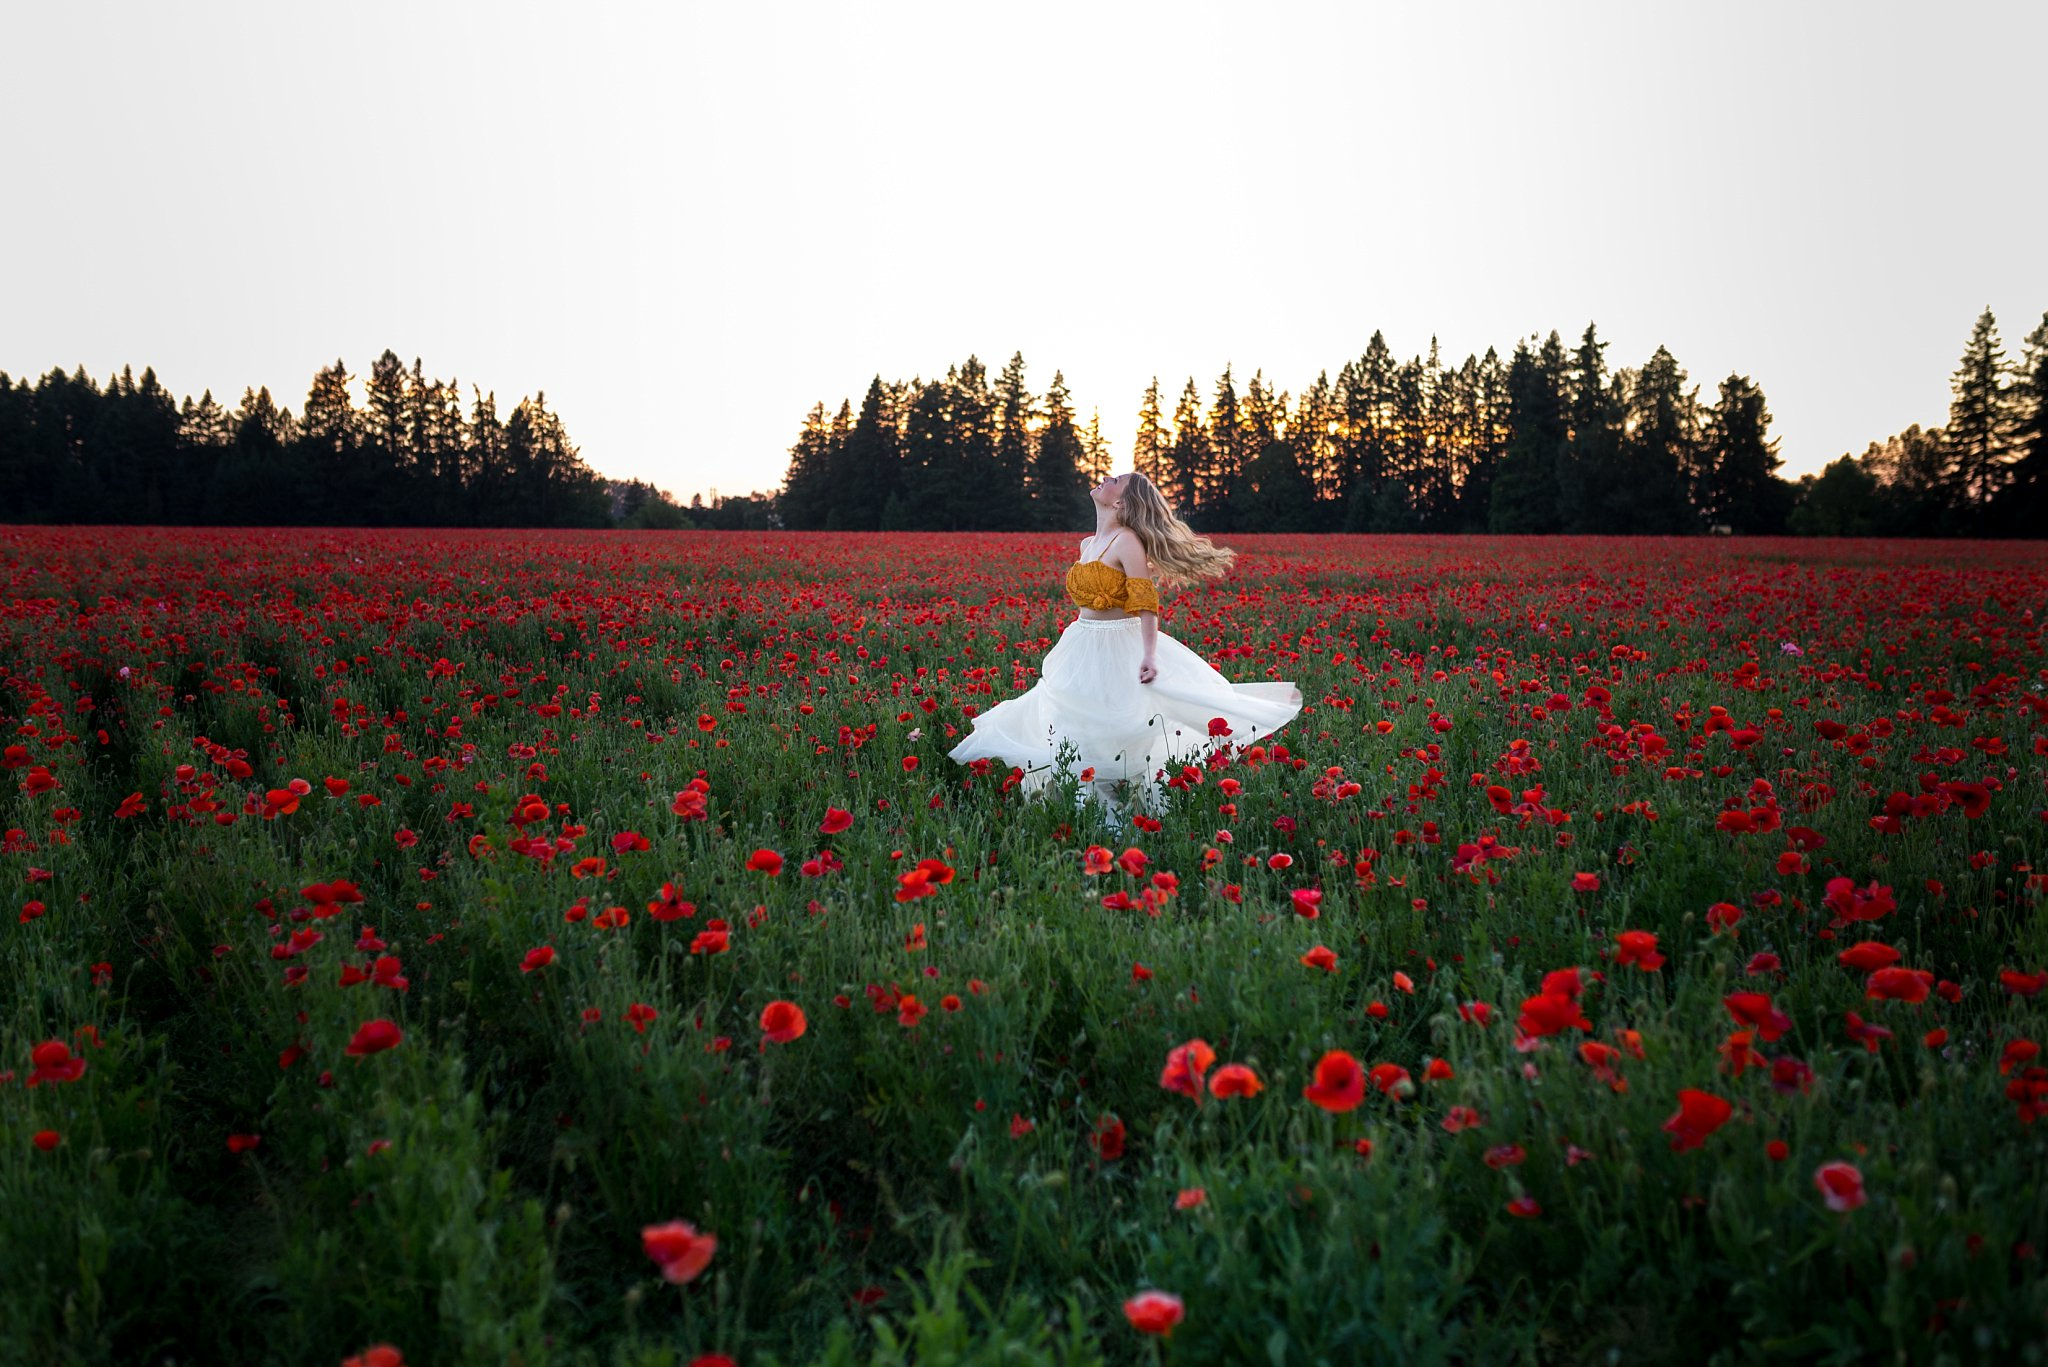 twirl in poppy flowers